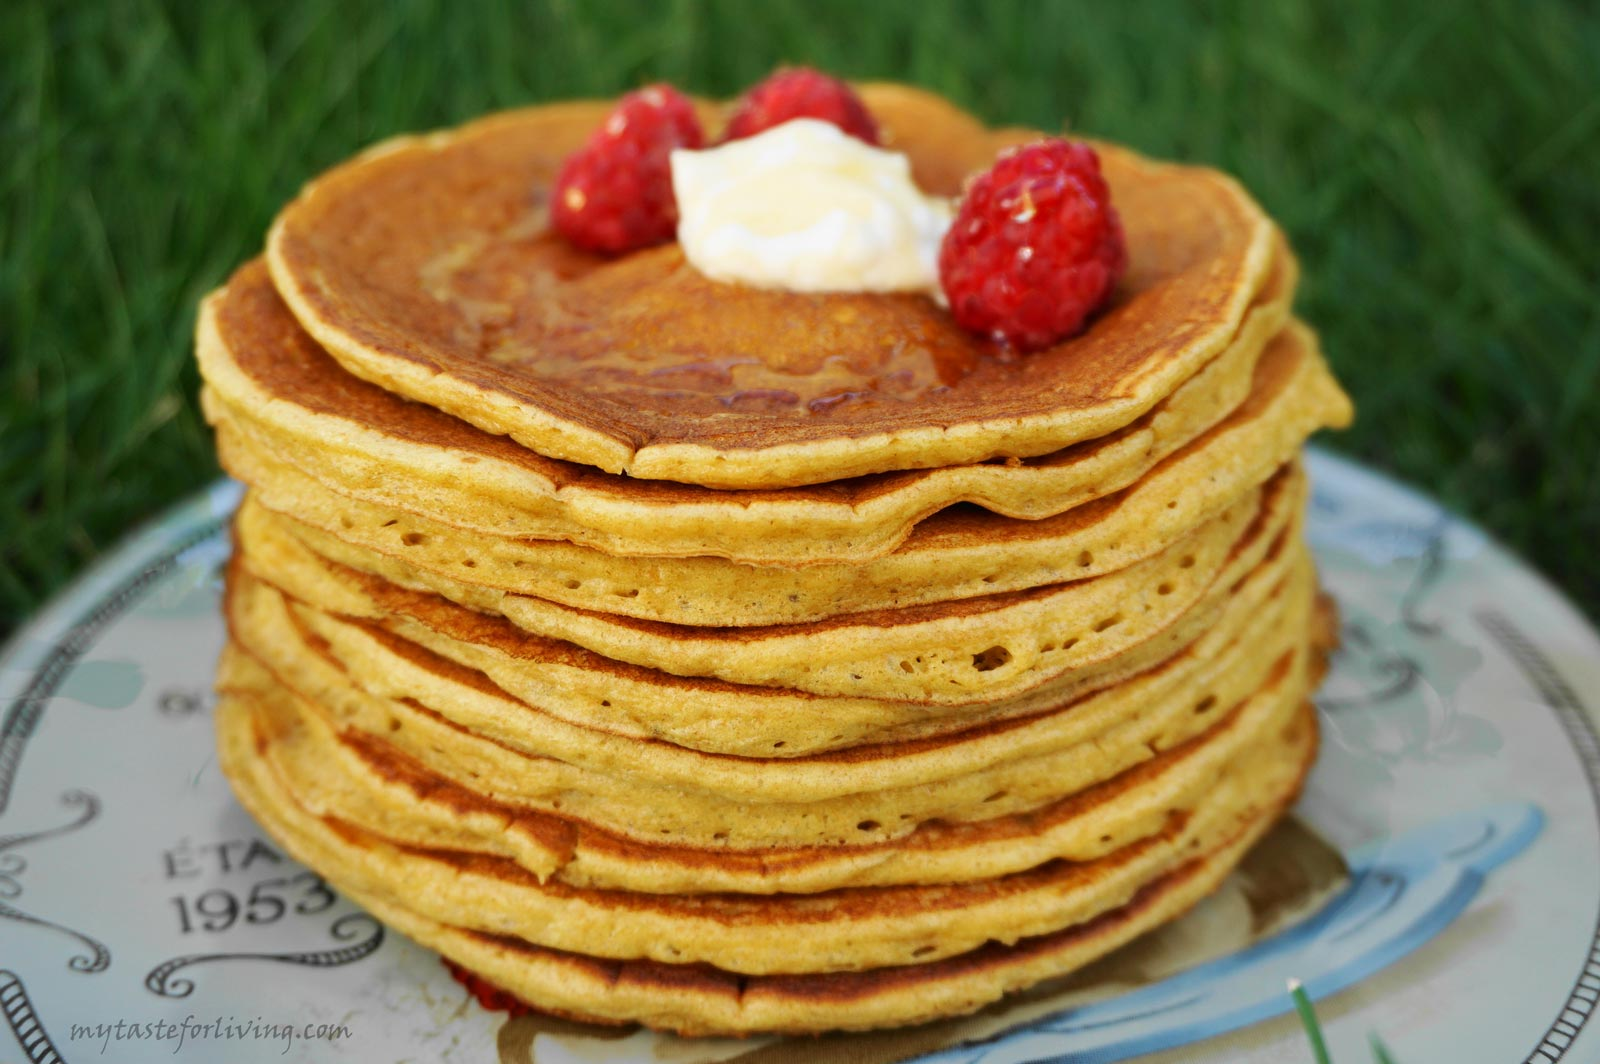 For the preparation of these appetizing and delicious sour cream pancakes I have used different types of flour - white, wholemeal or einkorn. They turn out excellent with each of them.